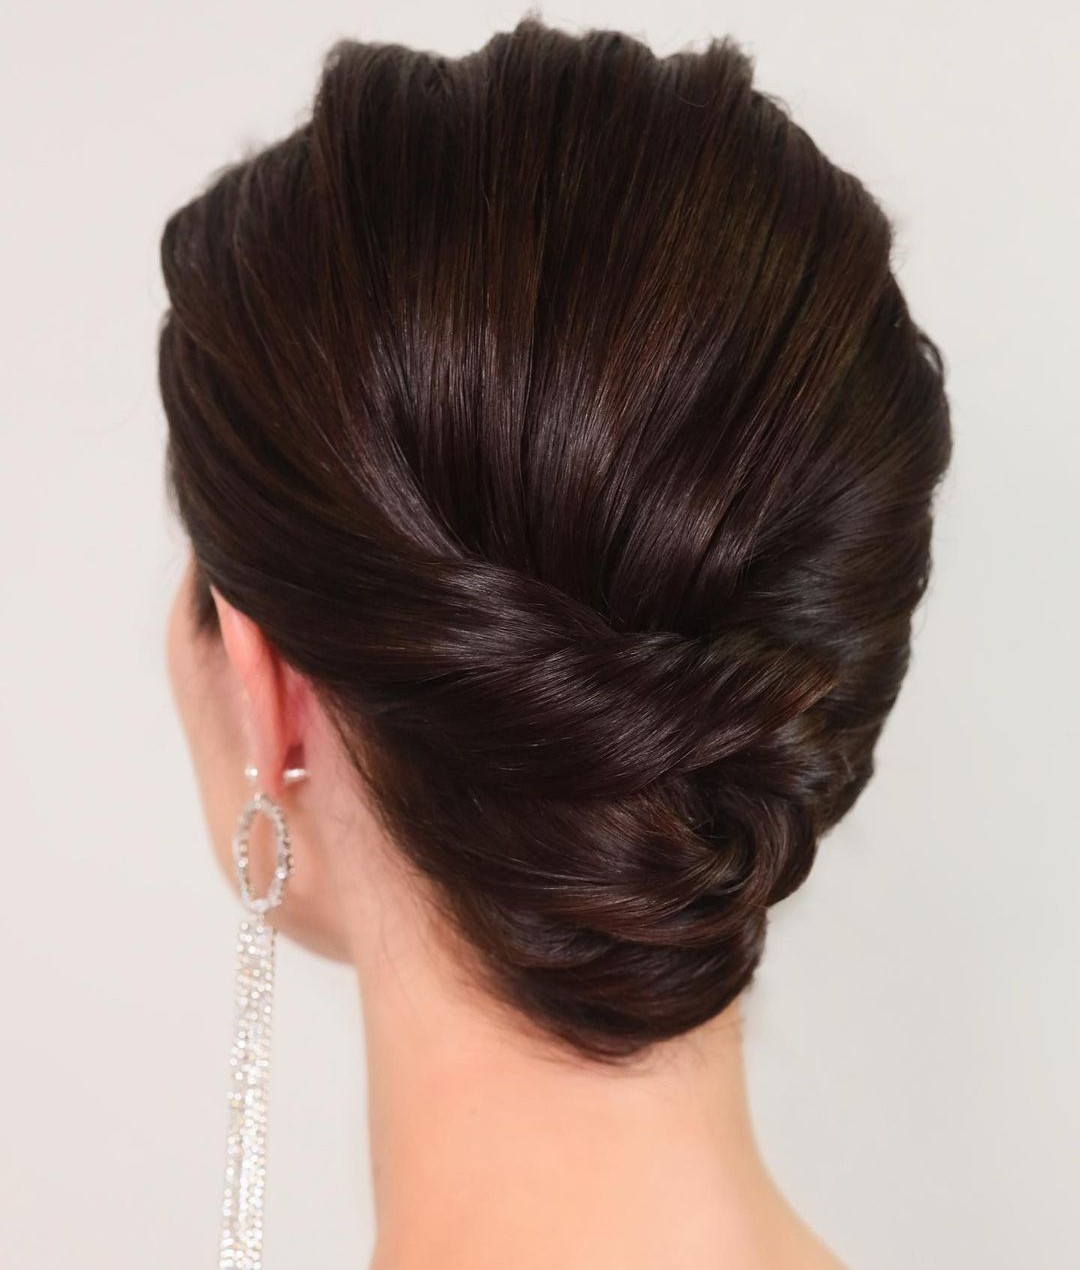 Twisted Bridal Updo for Short Hair